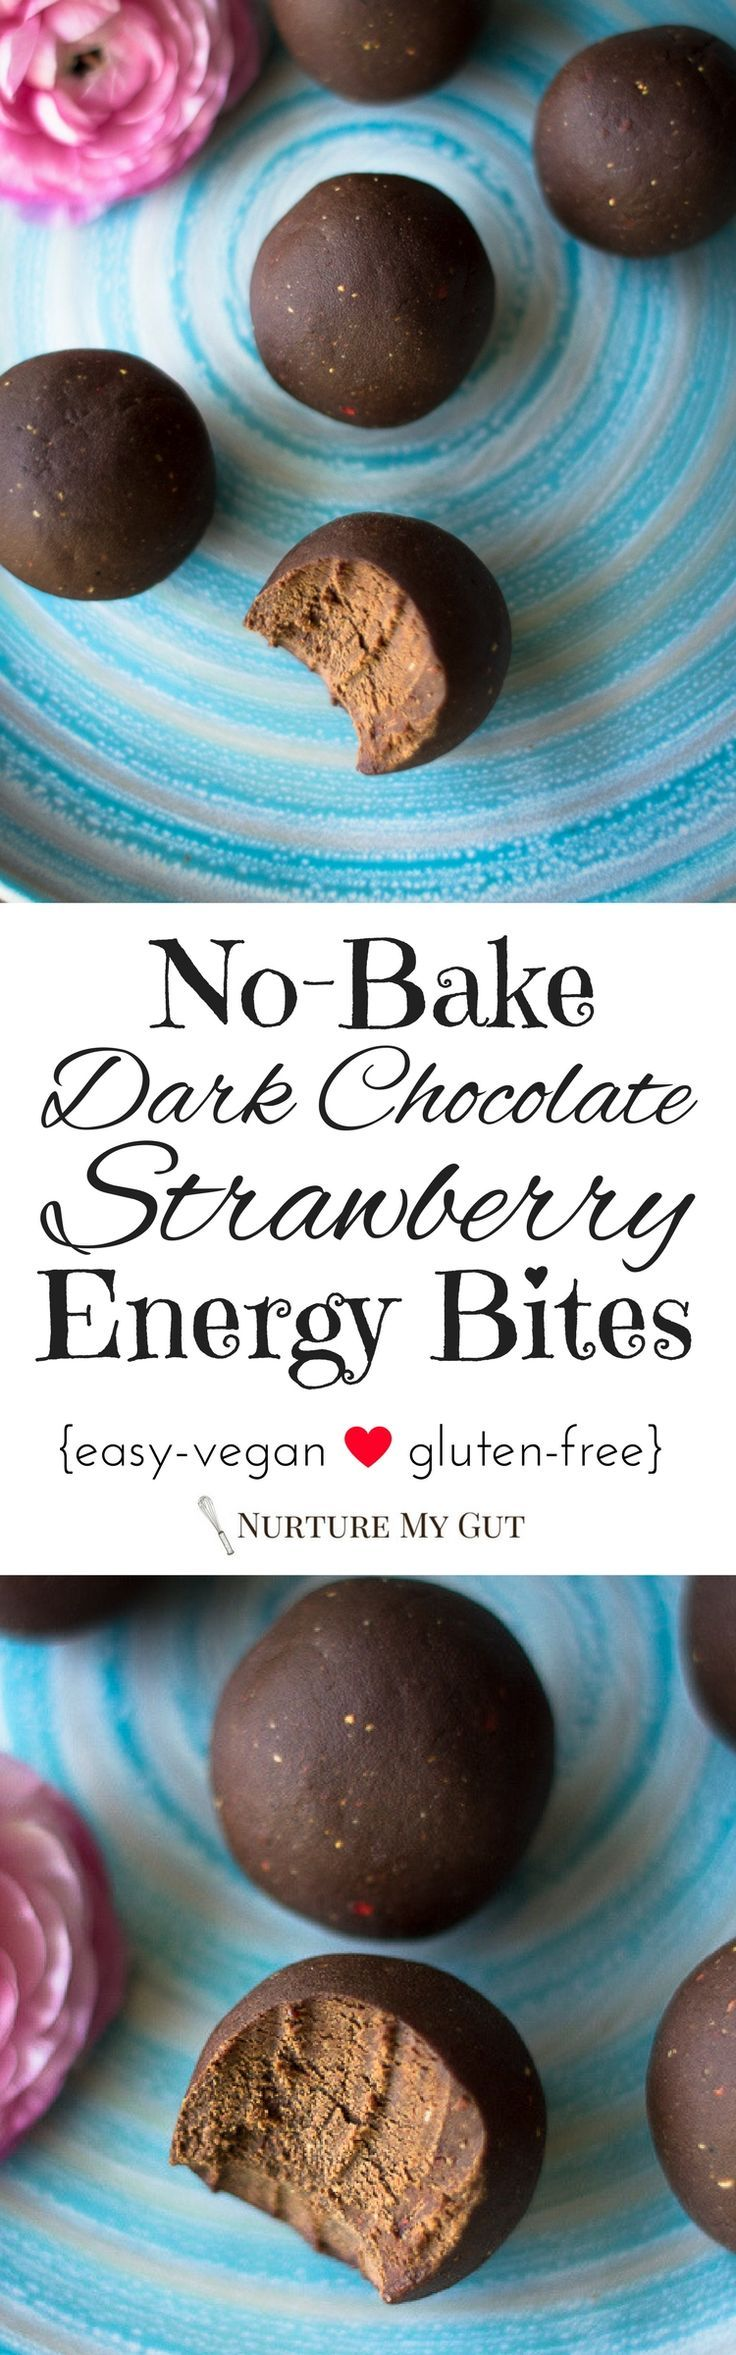 No-Bake Dark Chocolate Strawberry Energy Bites-clean eating recipe-made with delicious dark chocolate, vegan protein powder, cashew butter, freeze dried strawberries, maple syrup and fig balsamic.  Easy, healthy & delicious recipe. Perfect grab-n-go snack!